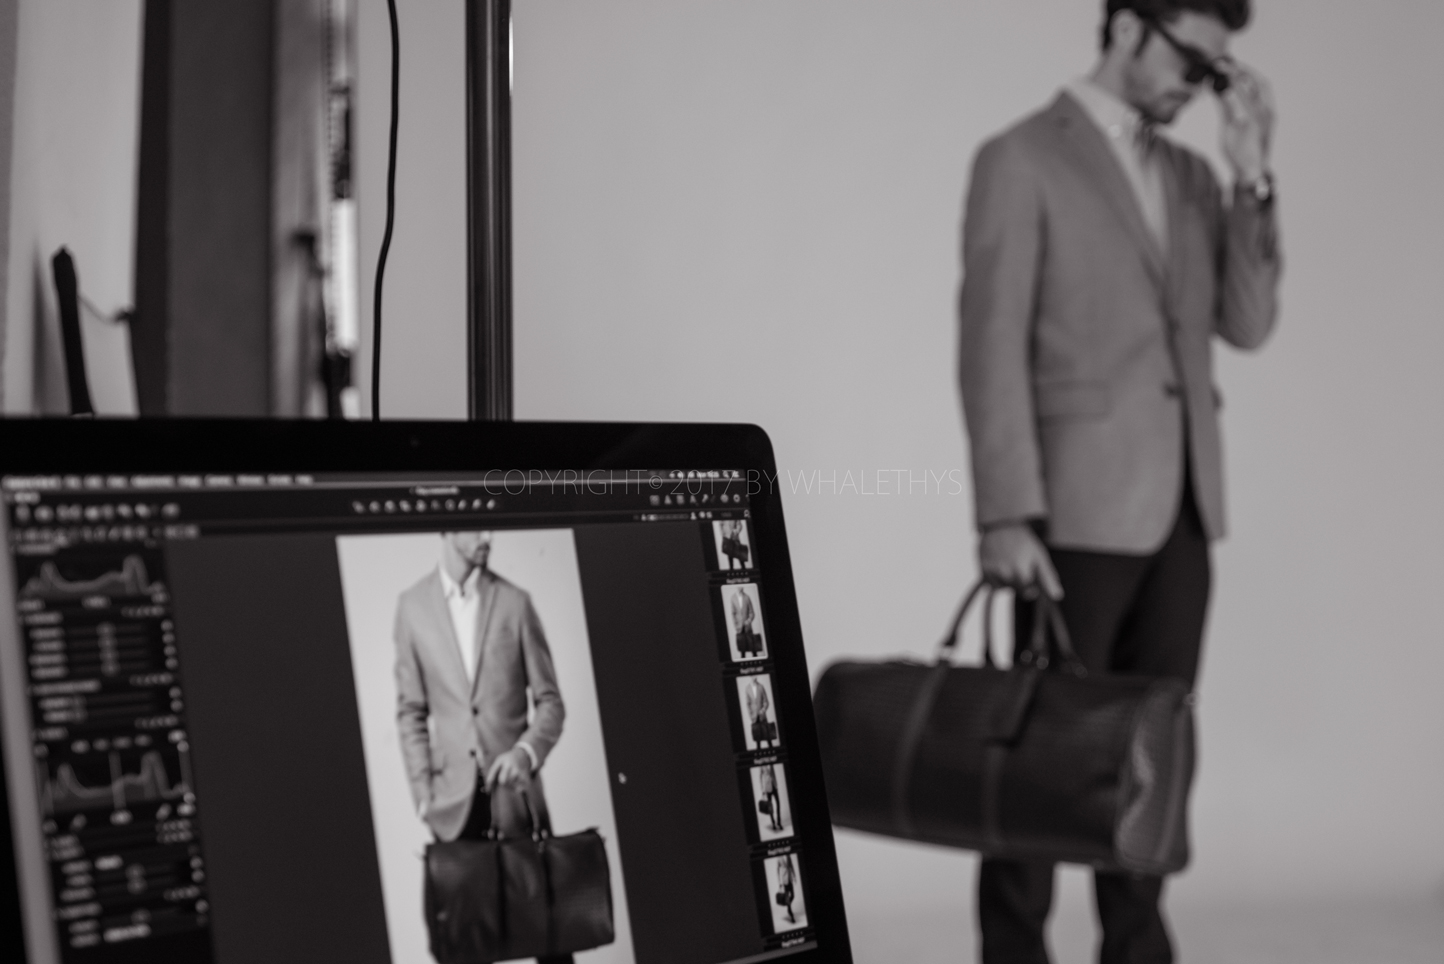 [BTS] Bag collection by Bossa Kauaso